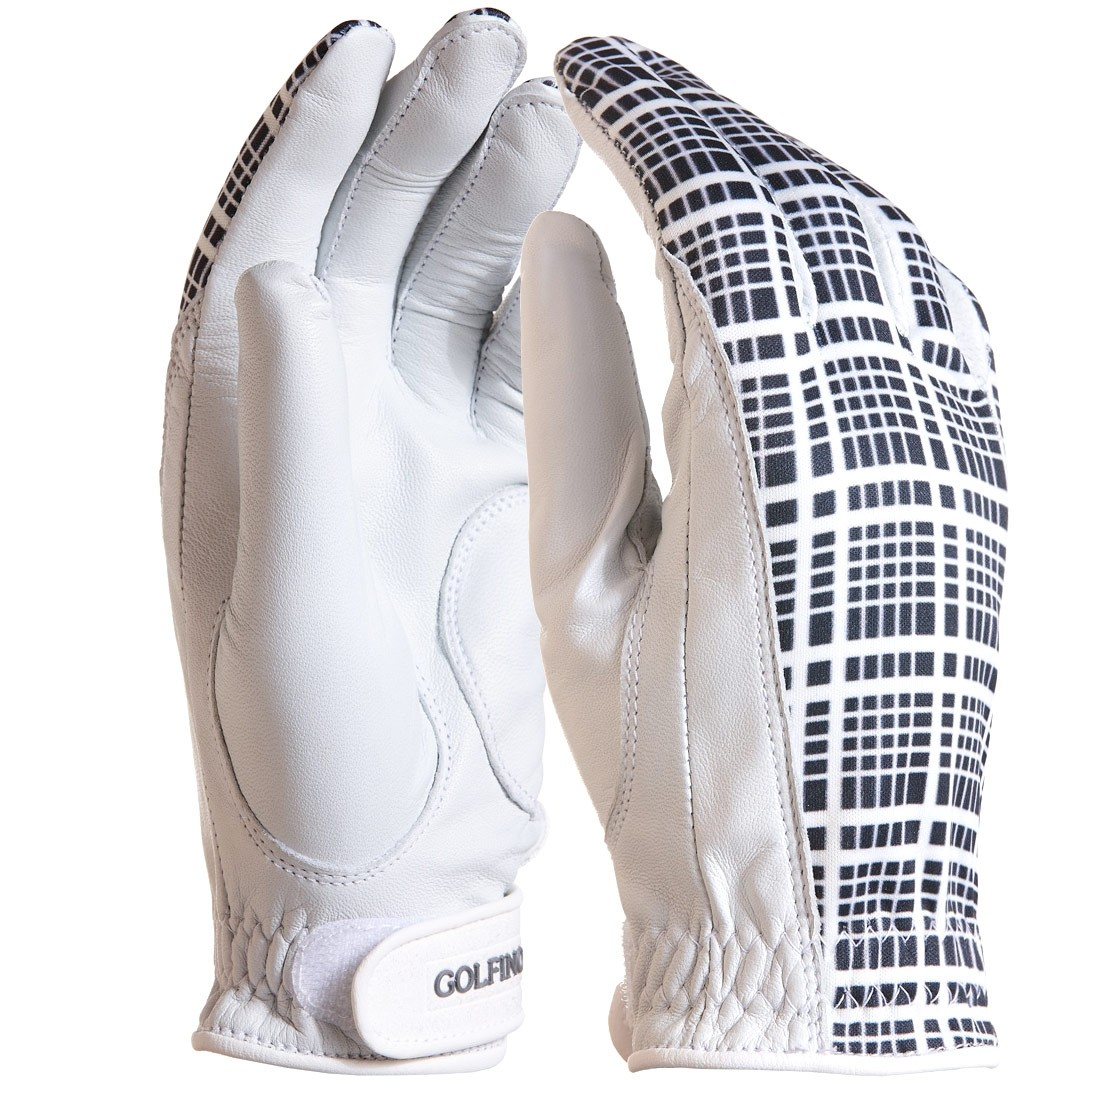 Checked golf gloves